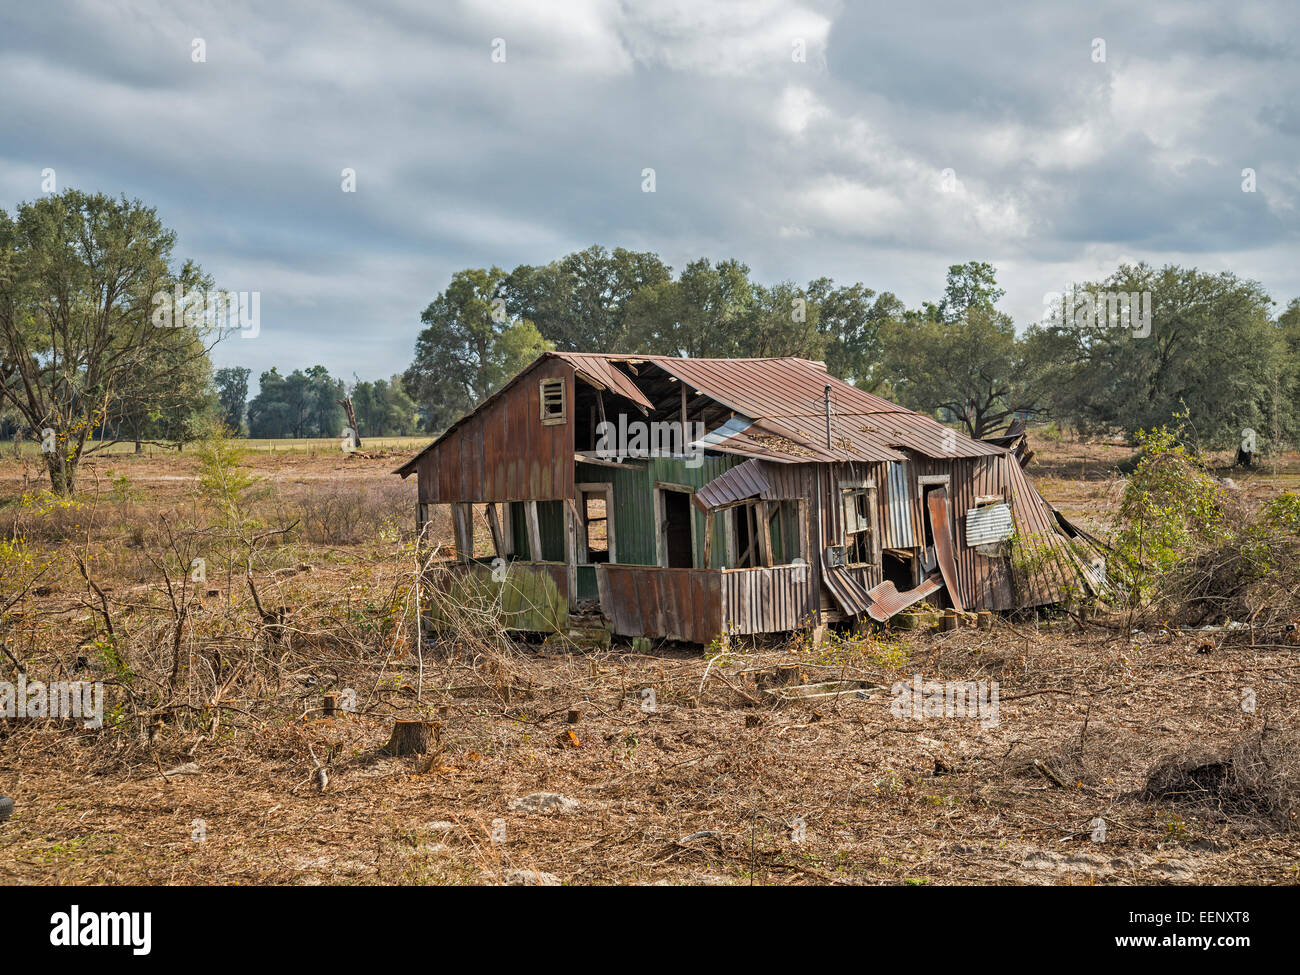 Cleared Land Reveals An Old Abandoned House In North Central Florida